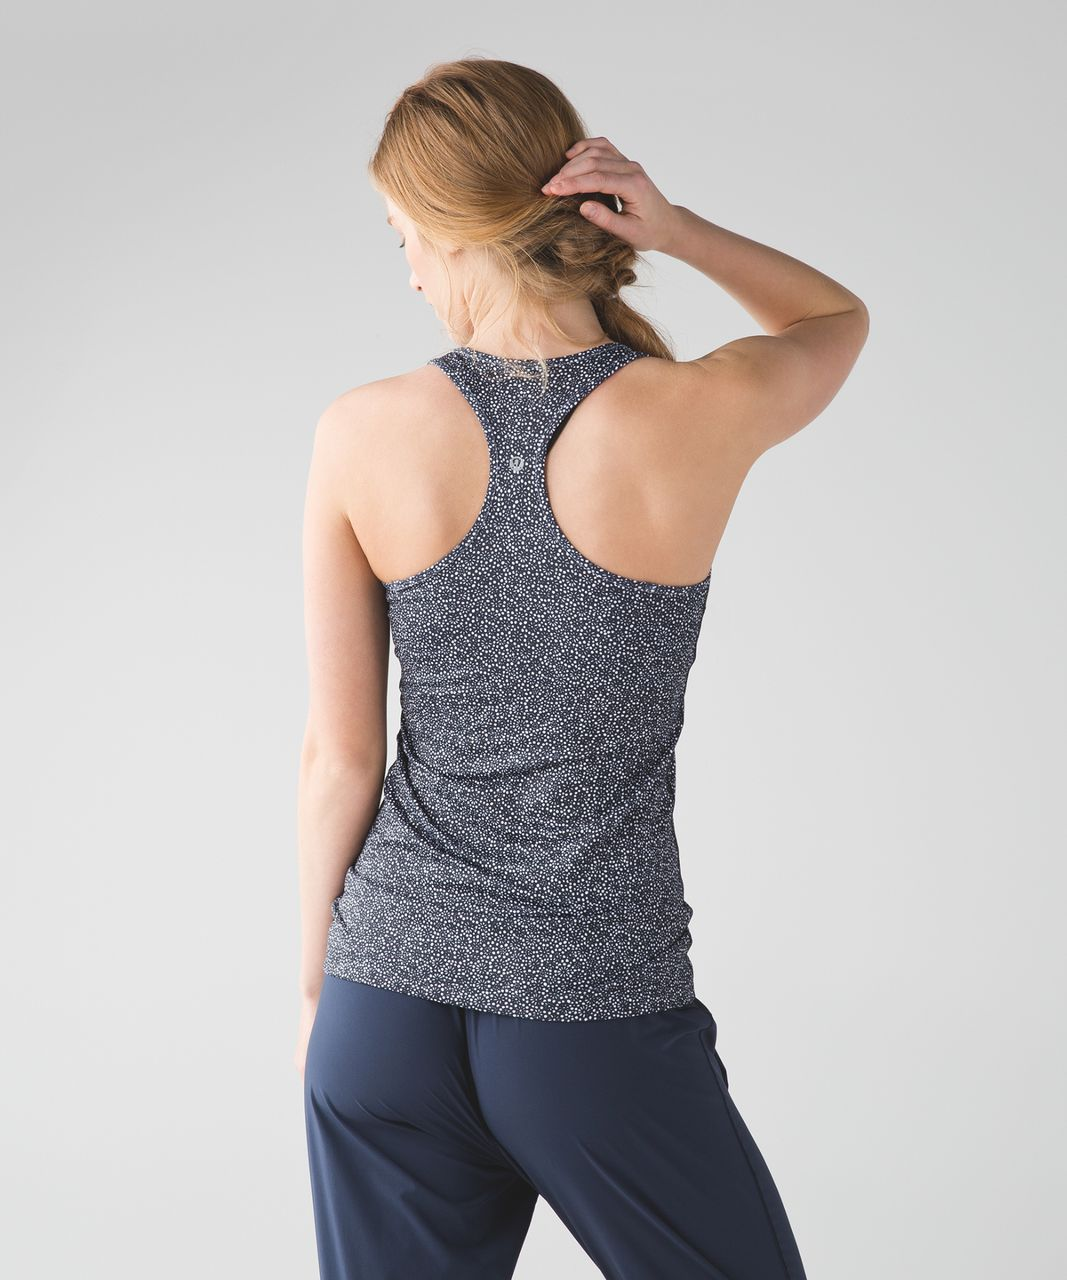 Lululemon Cool Racerback - Freckle Flower Black White